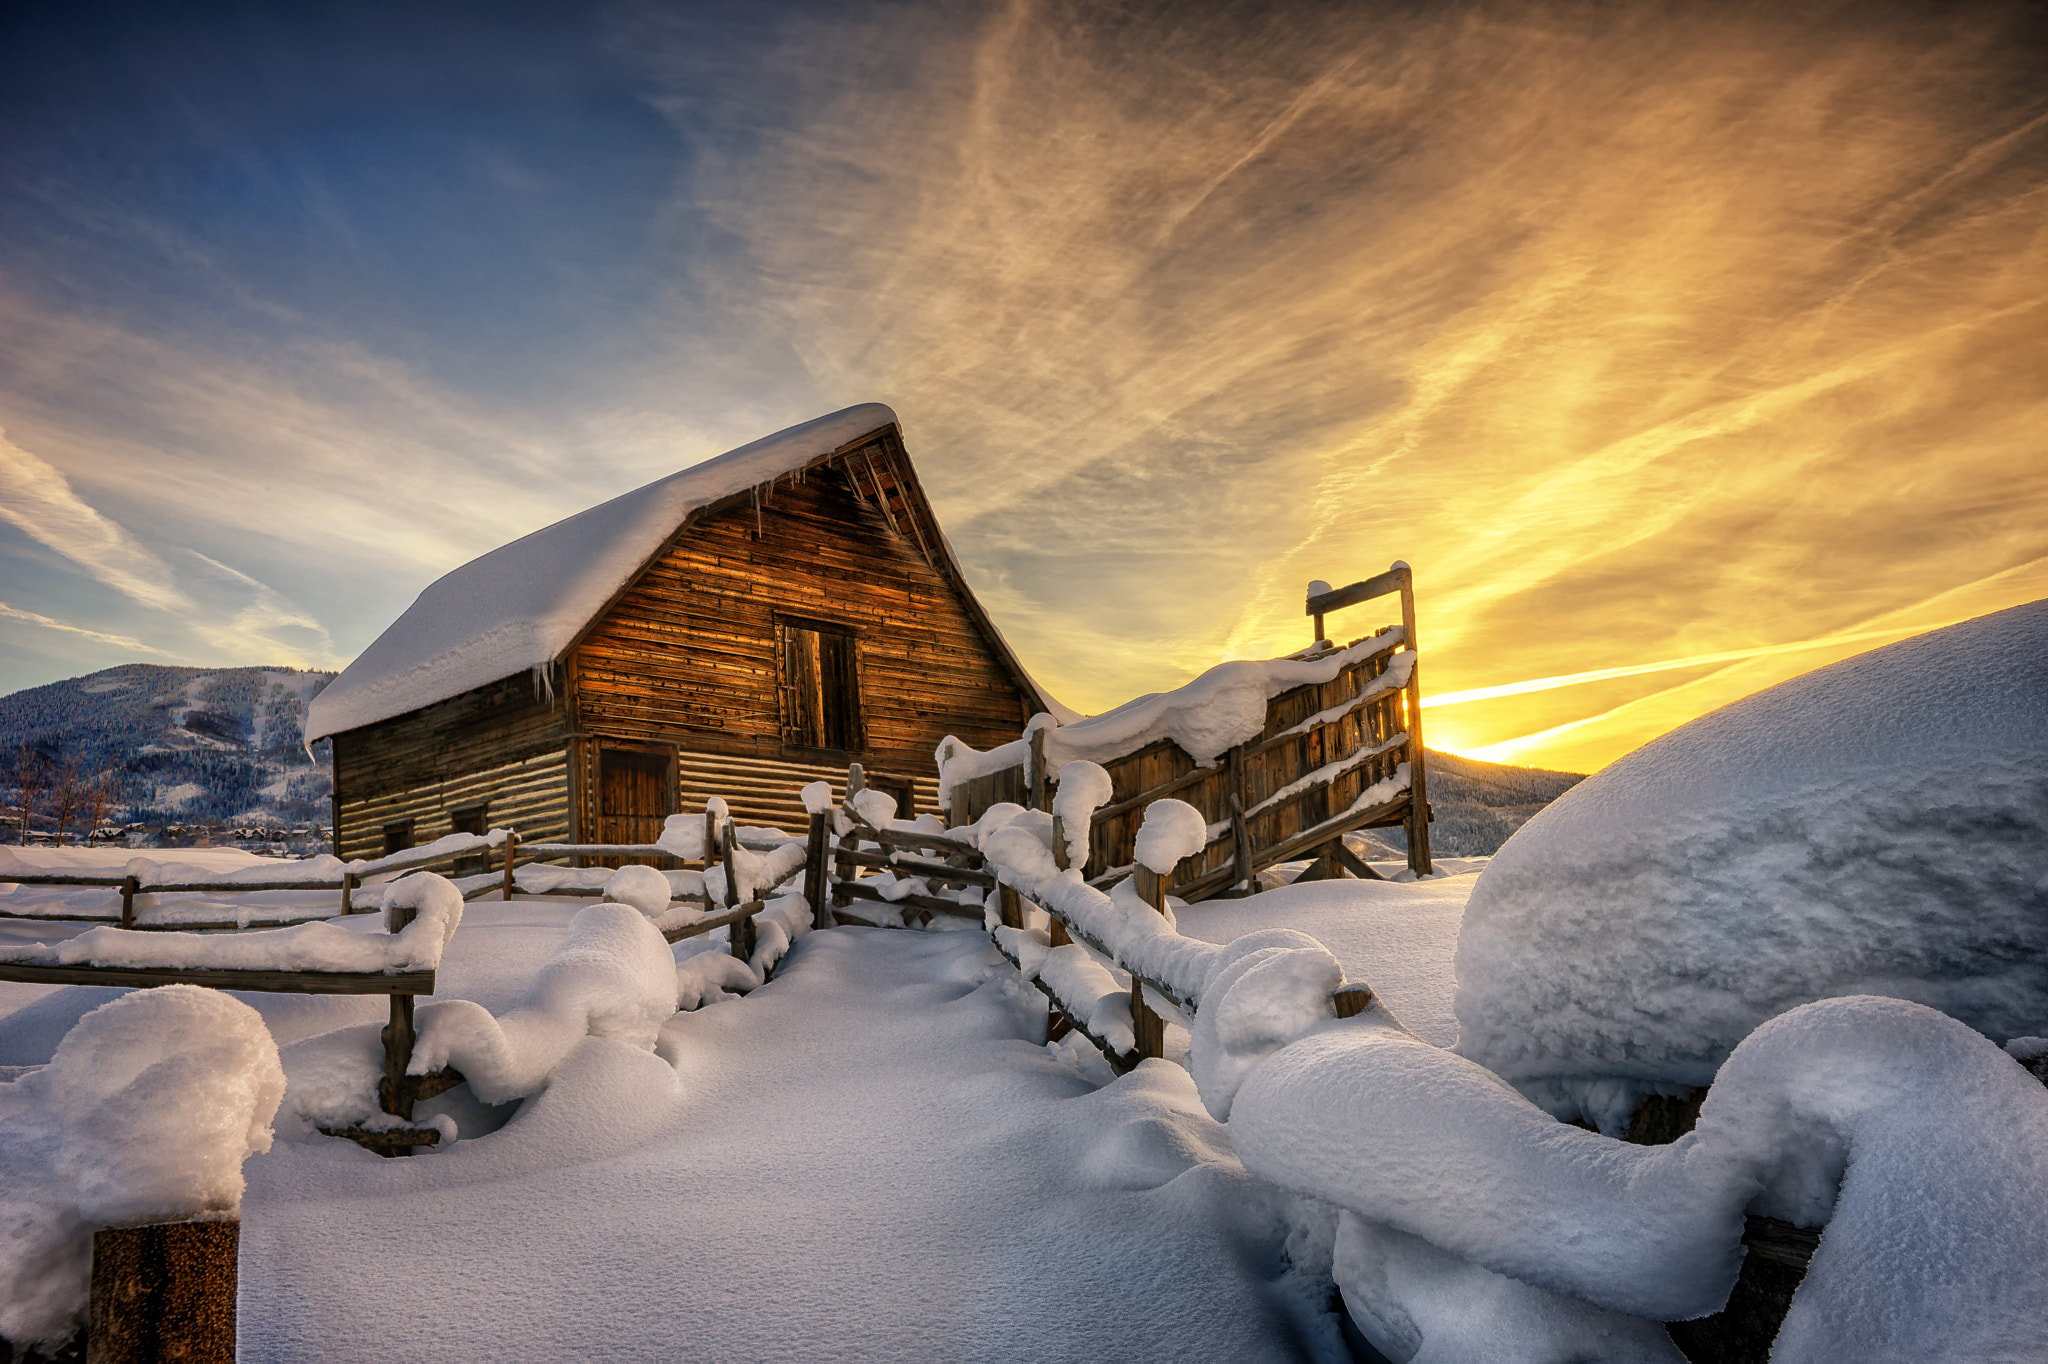 Photograph First light on fresh snow at the barn by David Soldano on 500px